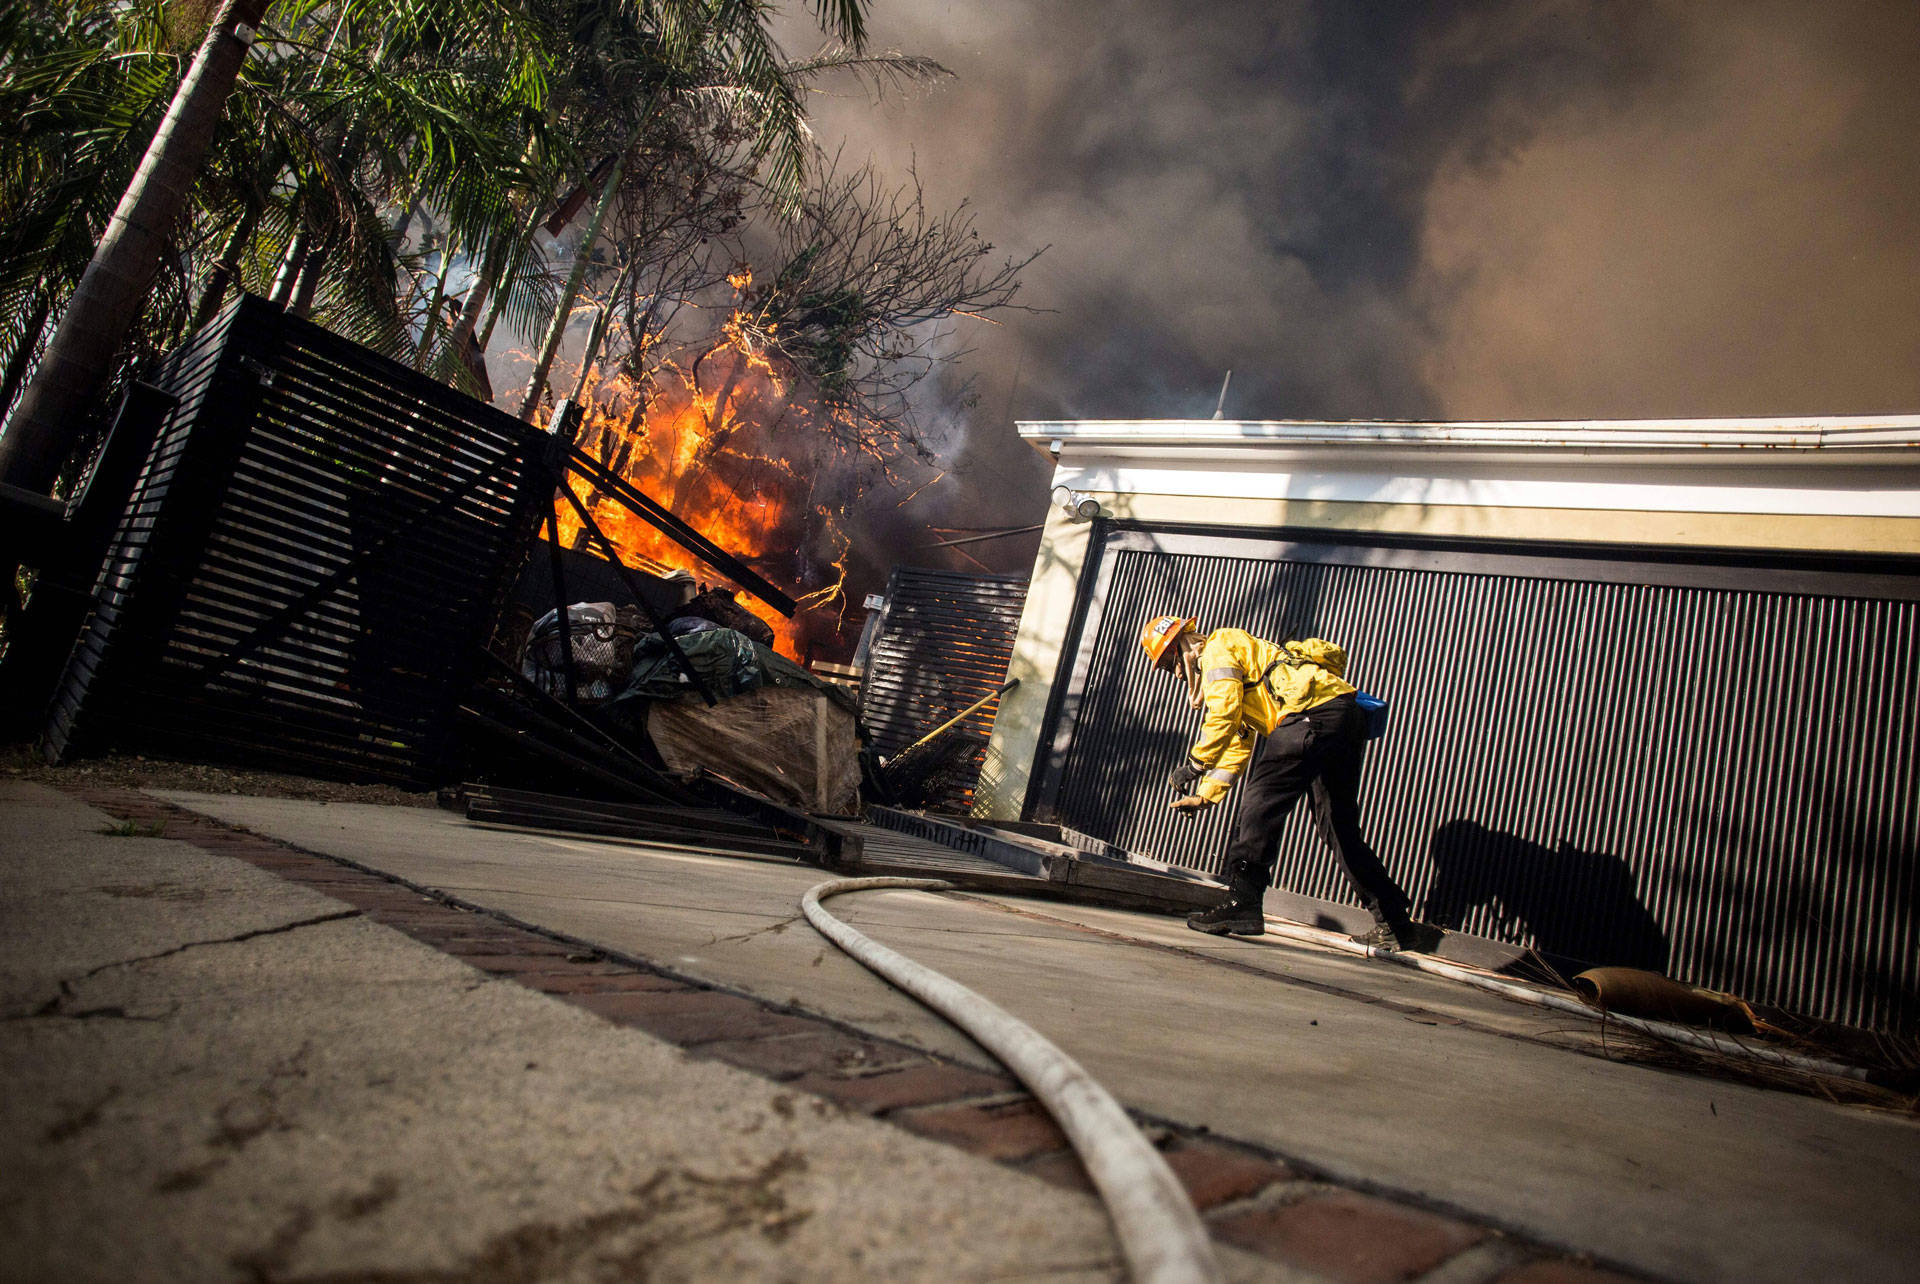 Firefighters work to save burning houses along Linda Flora Drive during the Skirball Fire in Los Angeles on Dec. 6, 2017.